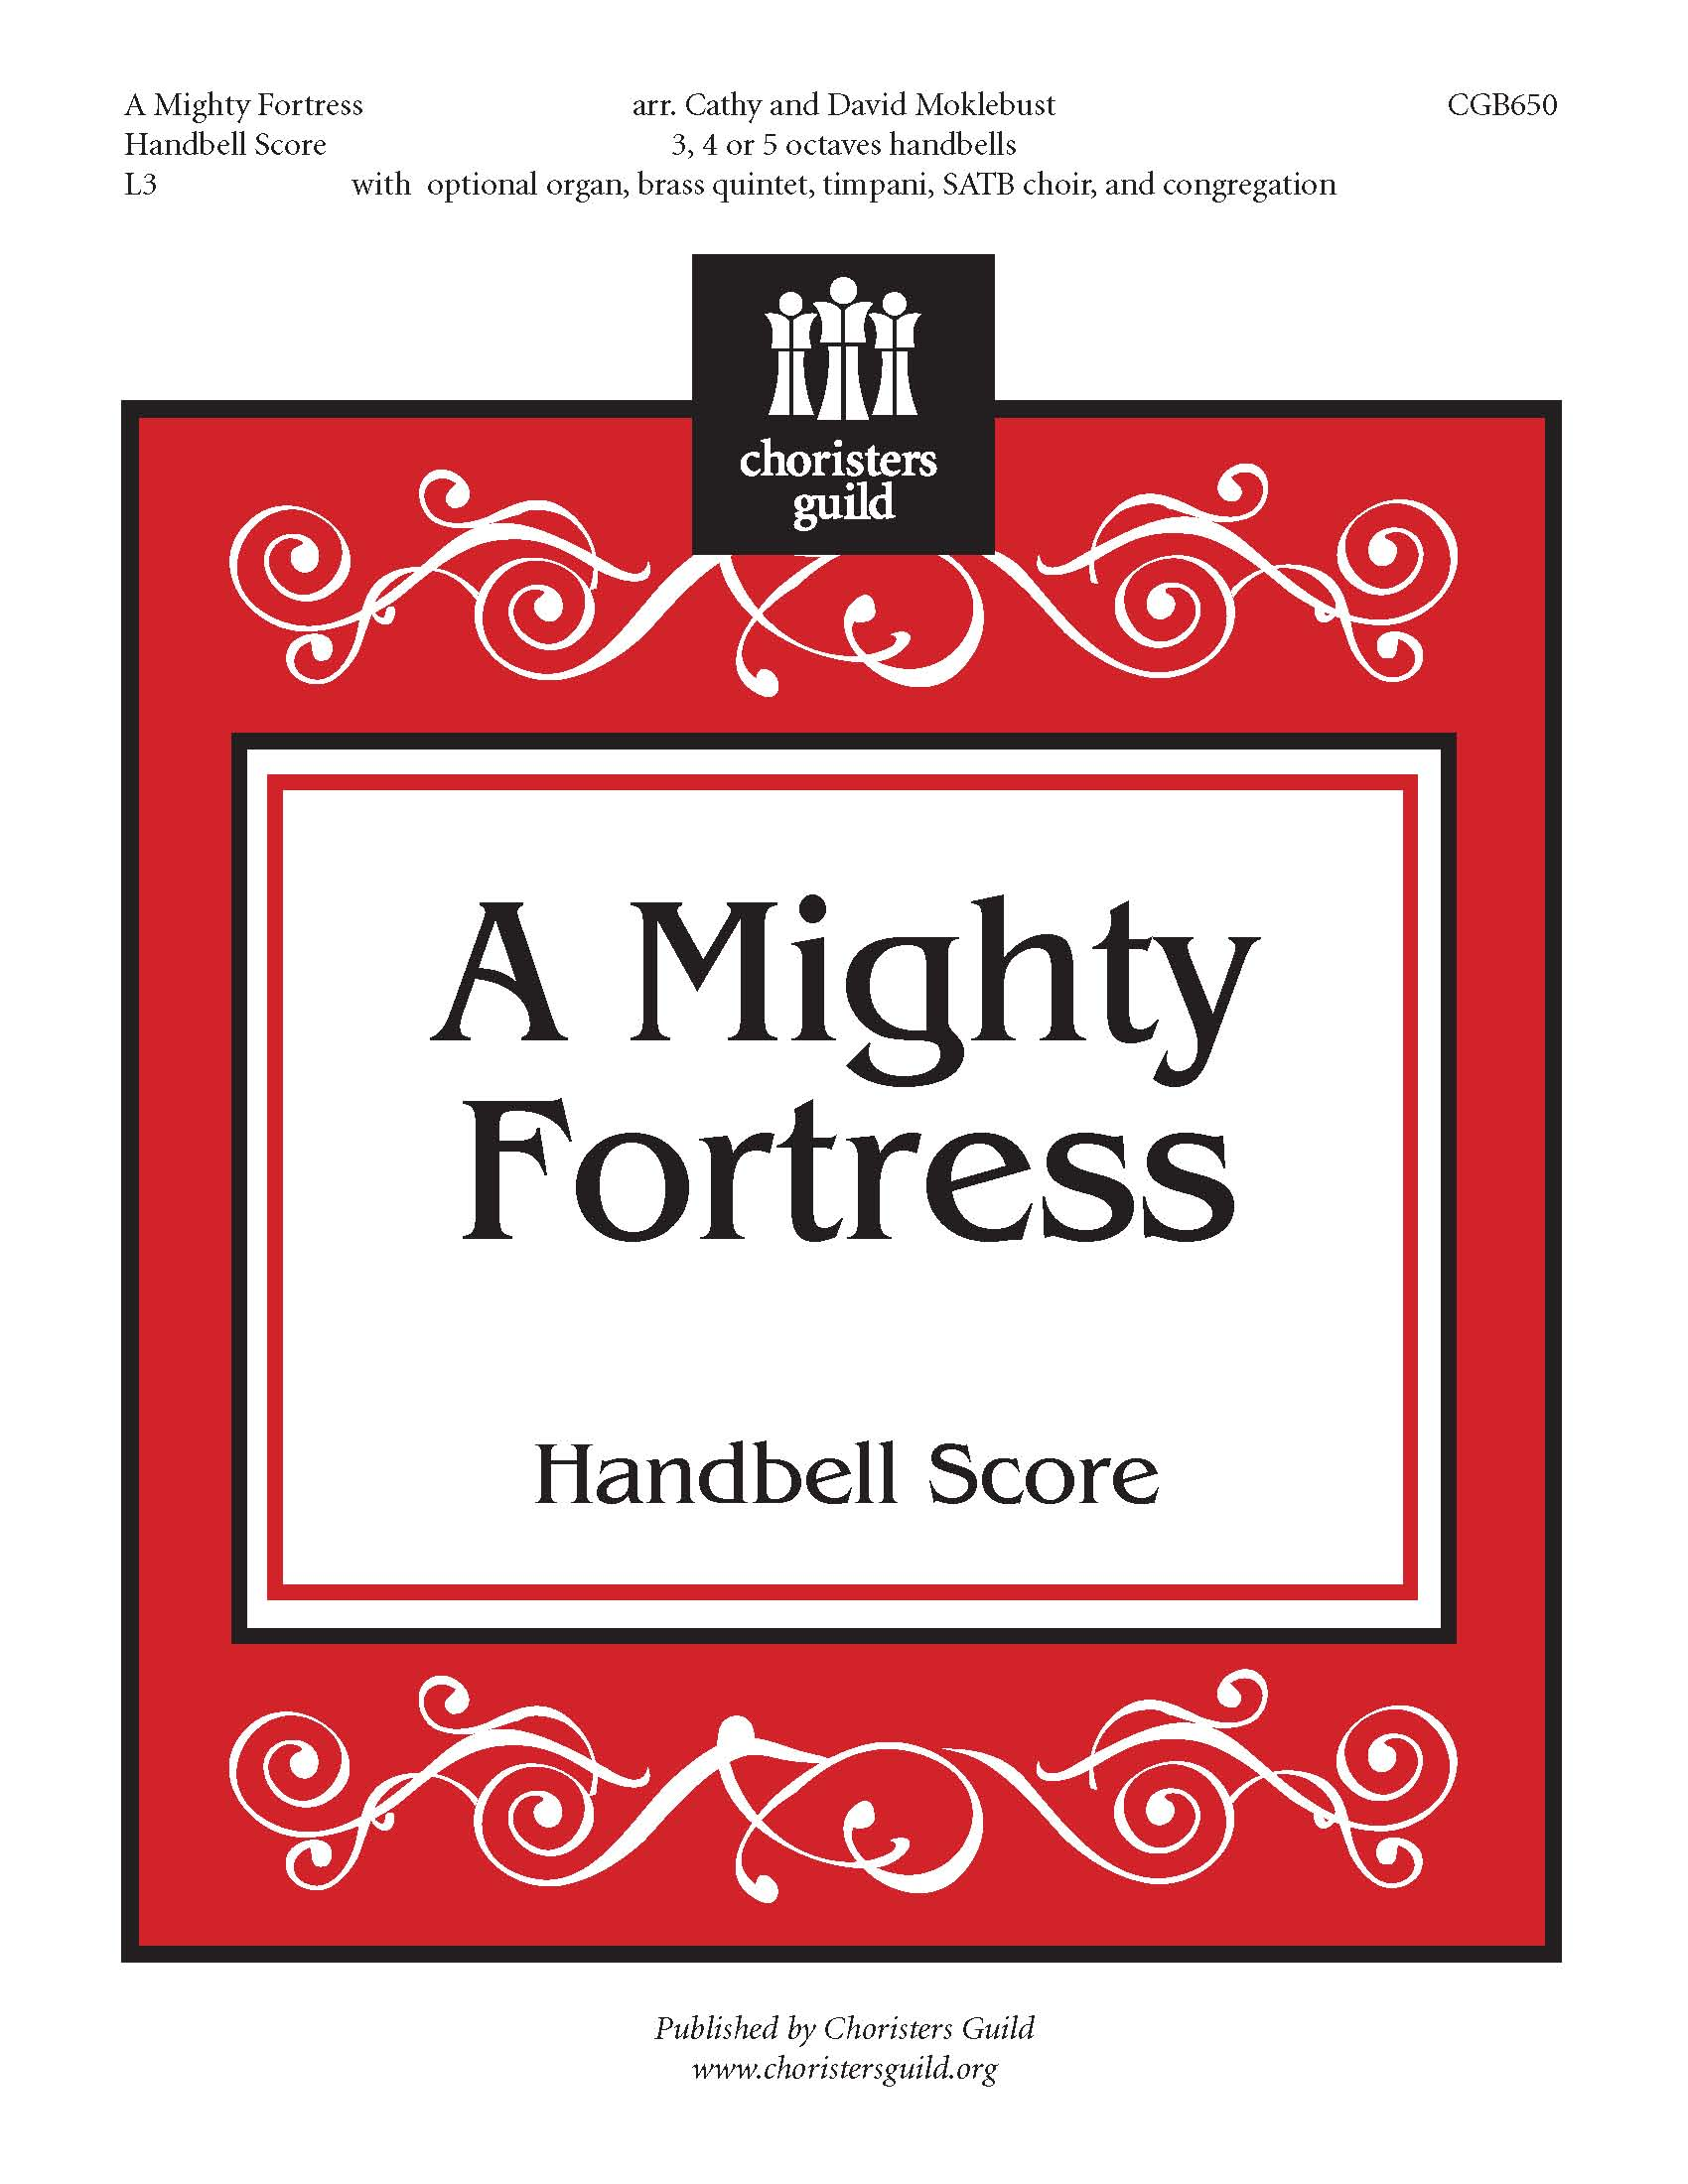 A Mighty Fortress - Handbell Score